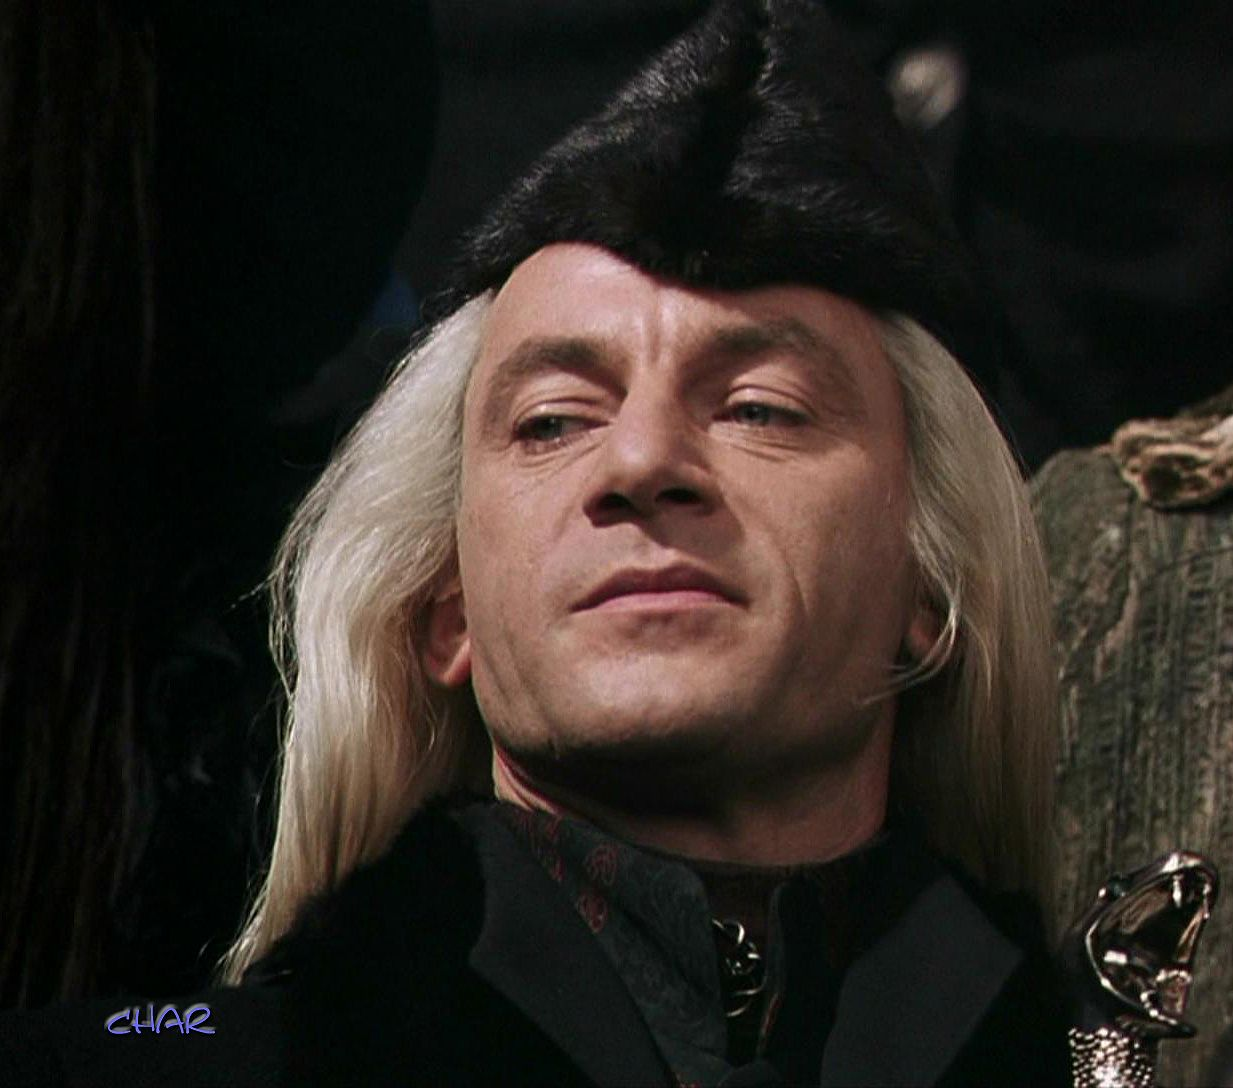 Jason Isaacs As Lucius Malfoy Lucius Malfoy At Quidditch Lucius Malfoy Lucius Malfoy Harry Potter Lucius Malfoy Jason Isaacs